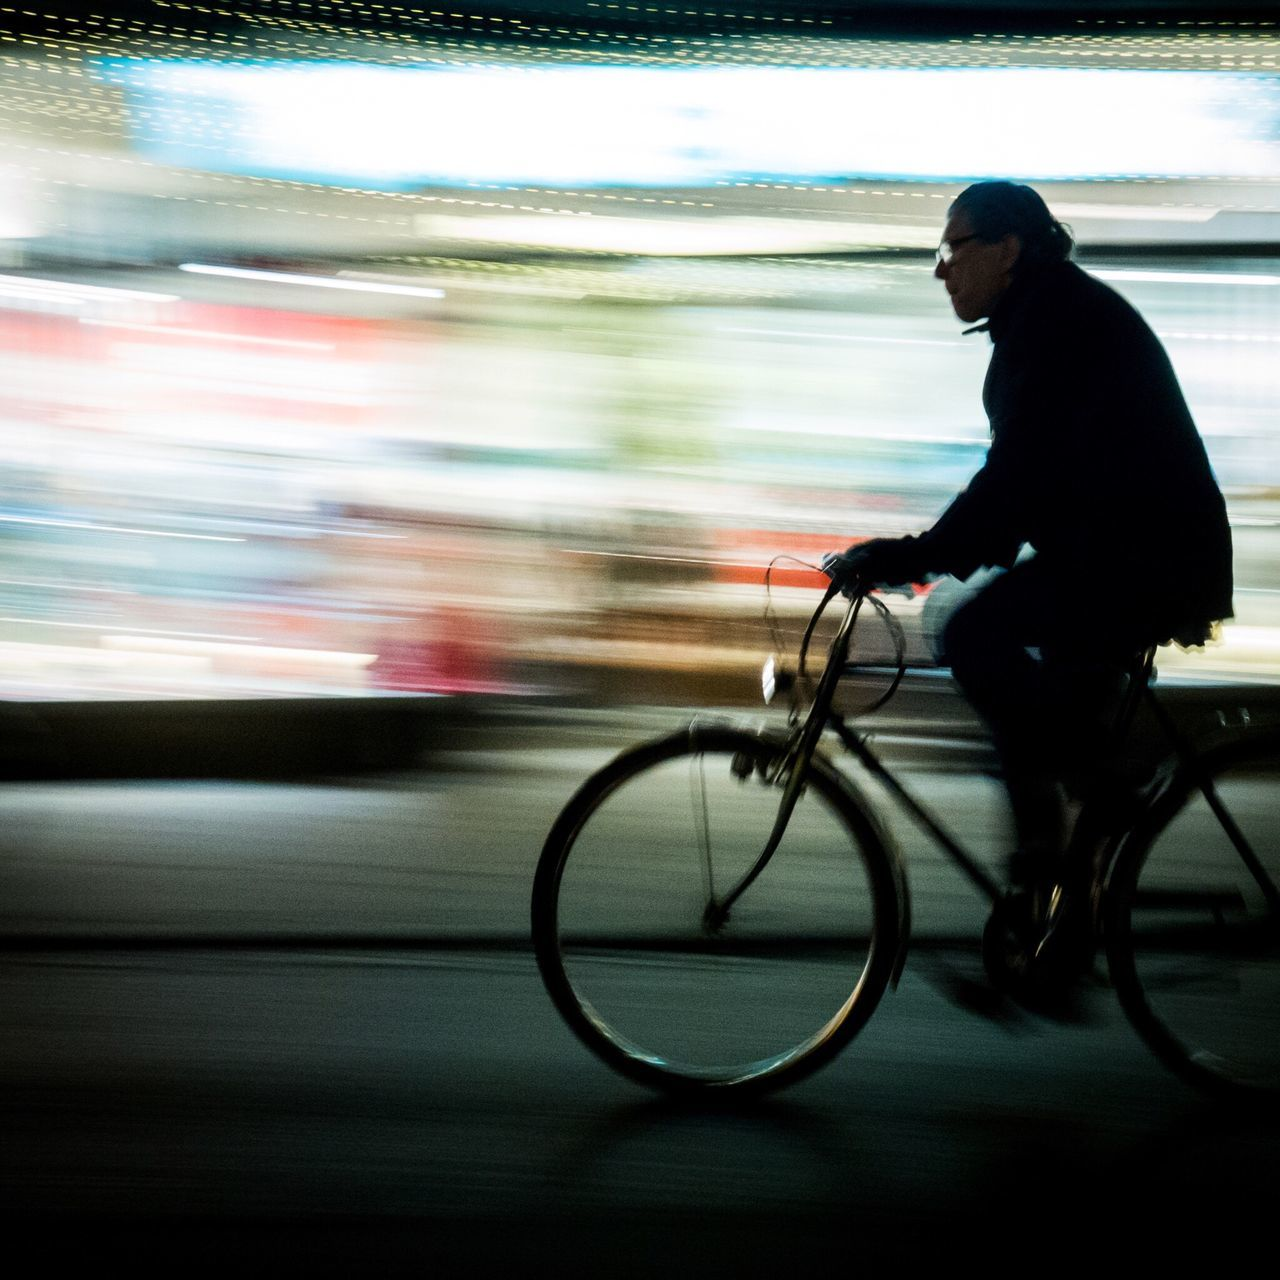 Blurred Motion Bicycle Motion Real People One Person Transportation Men Outdoors People Streetphotography Sebastianriegerphotos The Street Photographer - 2017 EyeEm Awards